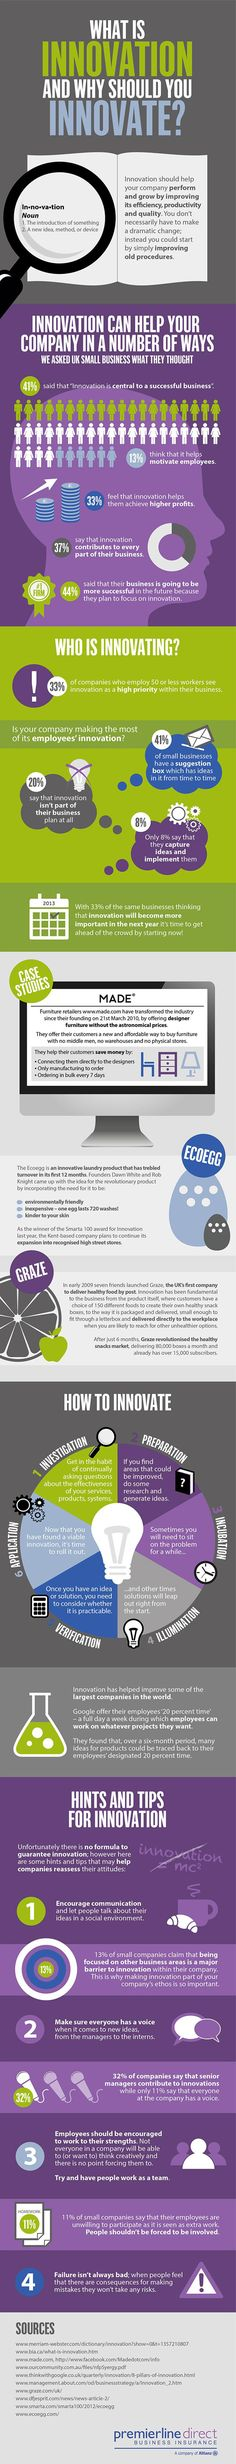 Innovation | #infographic repinned by @Piktochart